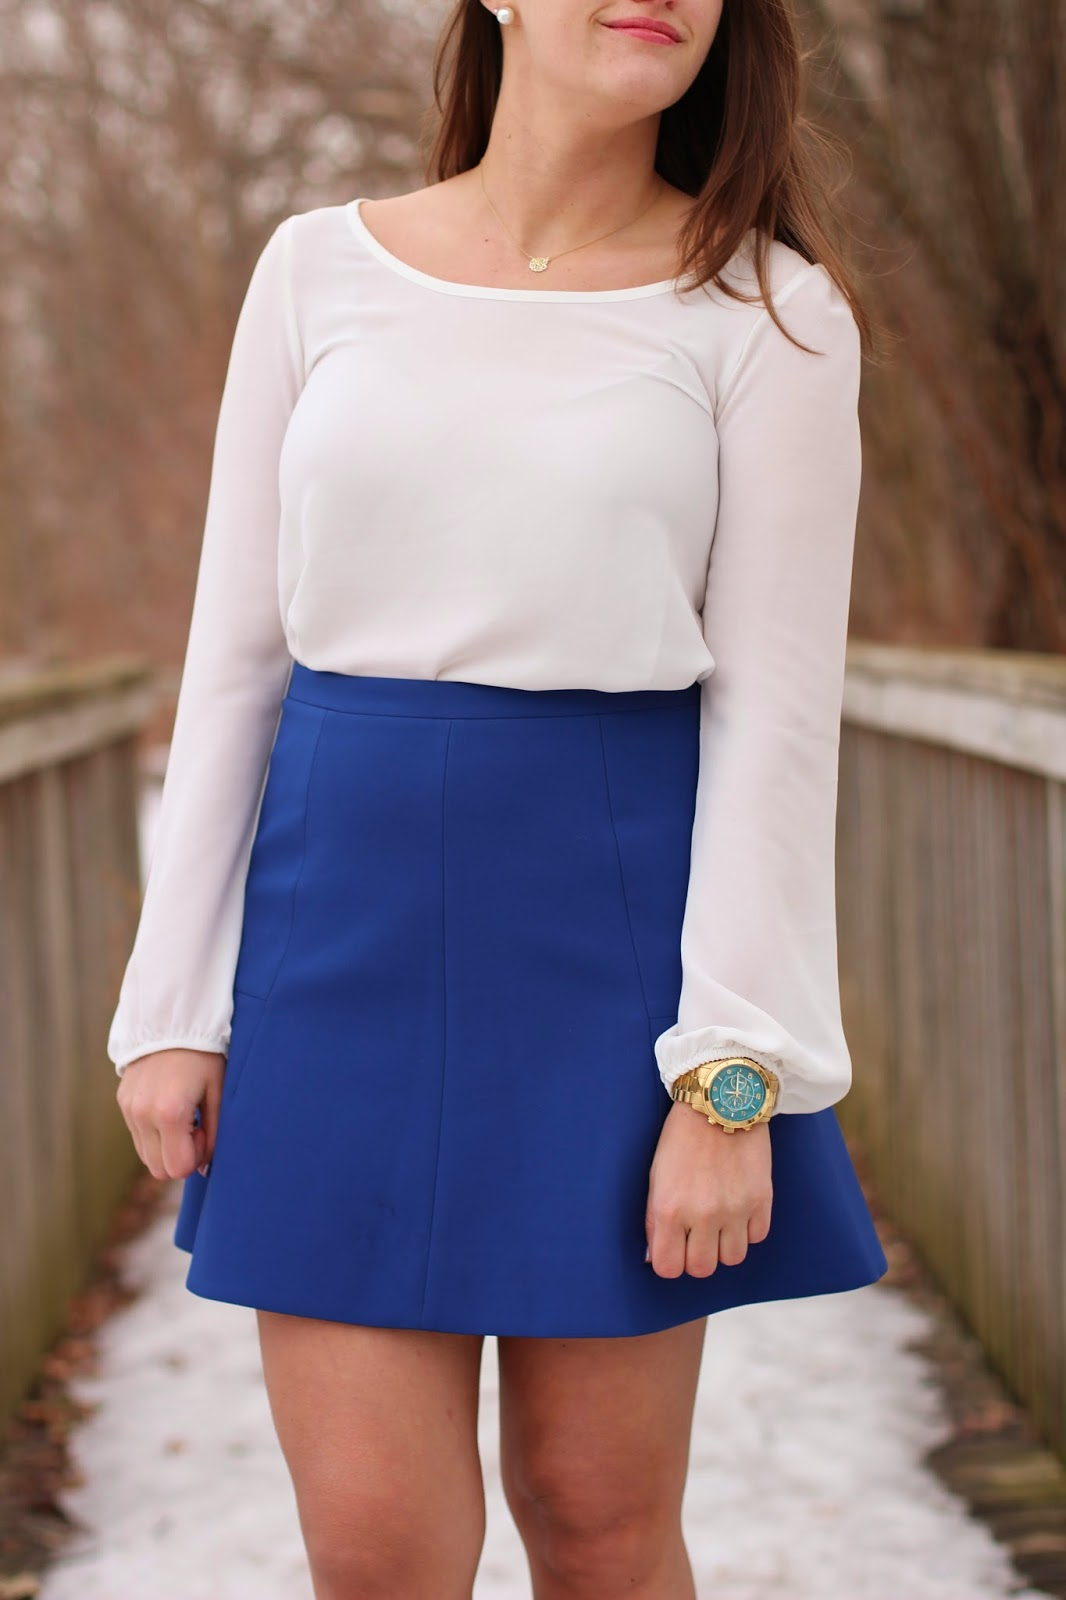 kentucky fashion blogger, university of kentucky